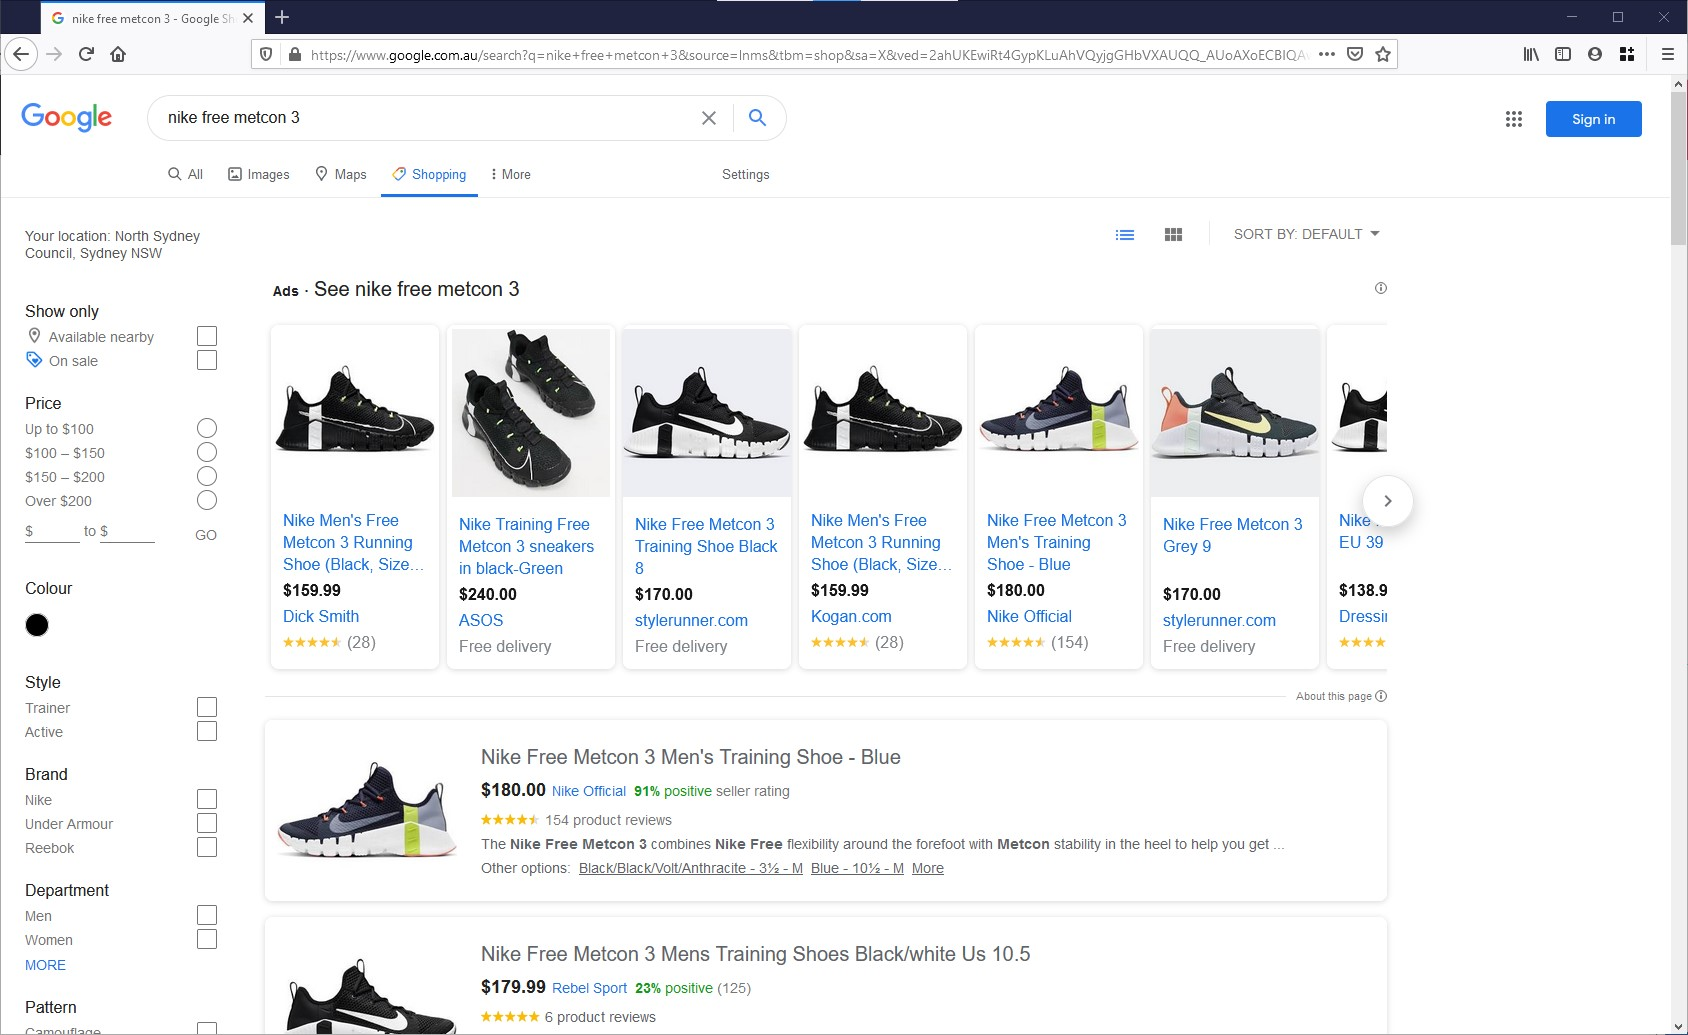 Paid Media ads in Google Shopping